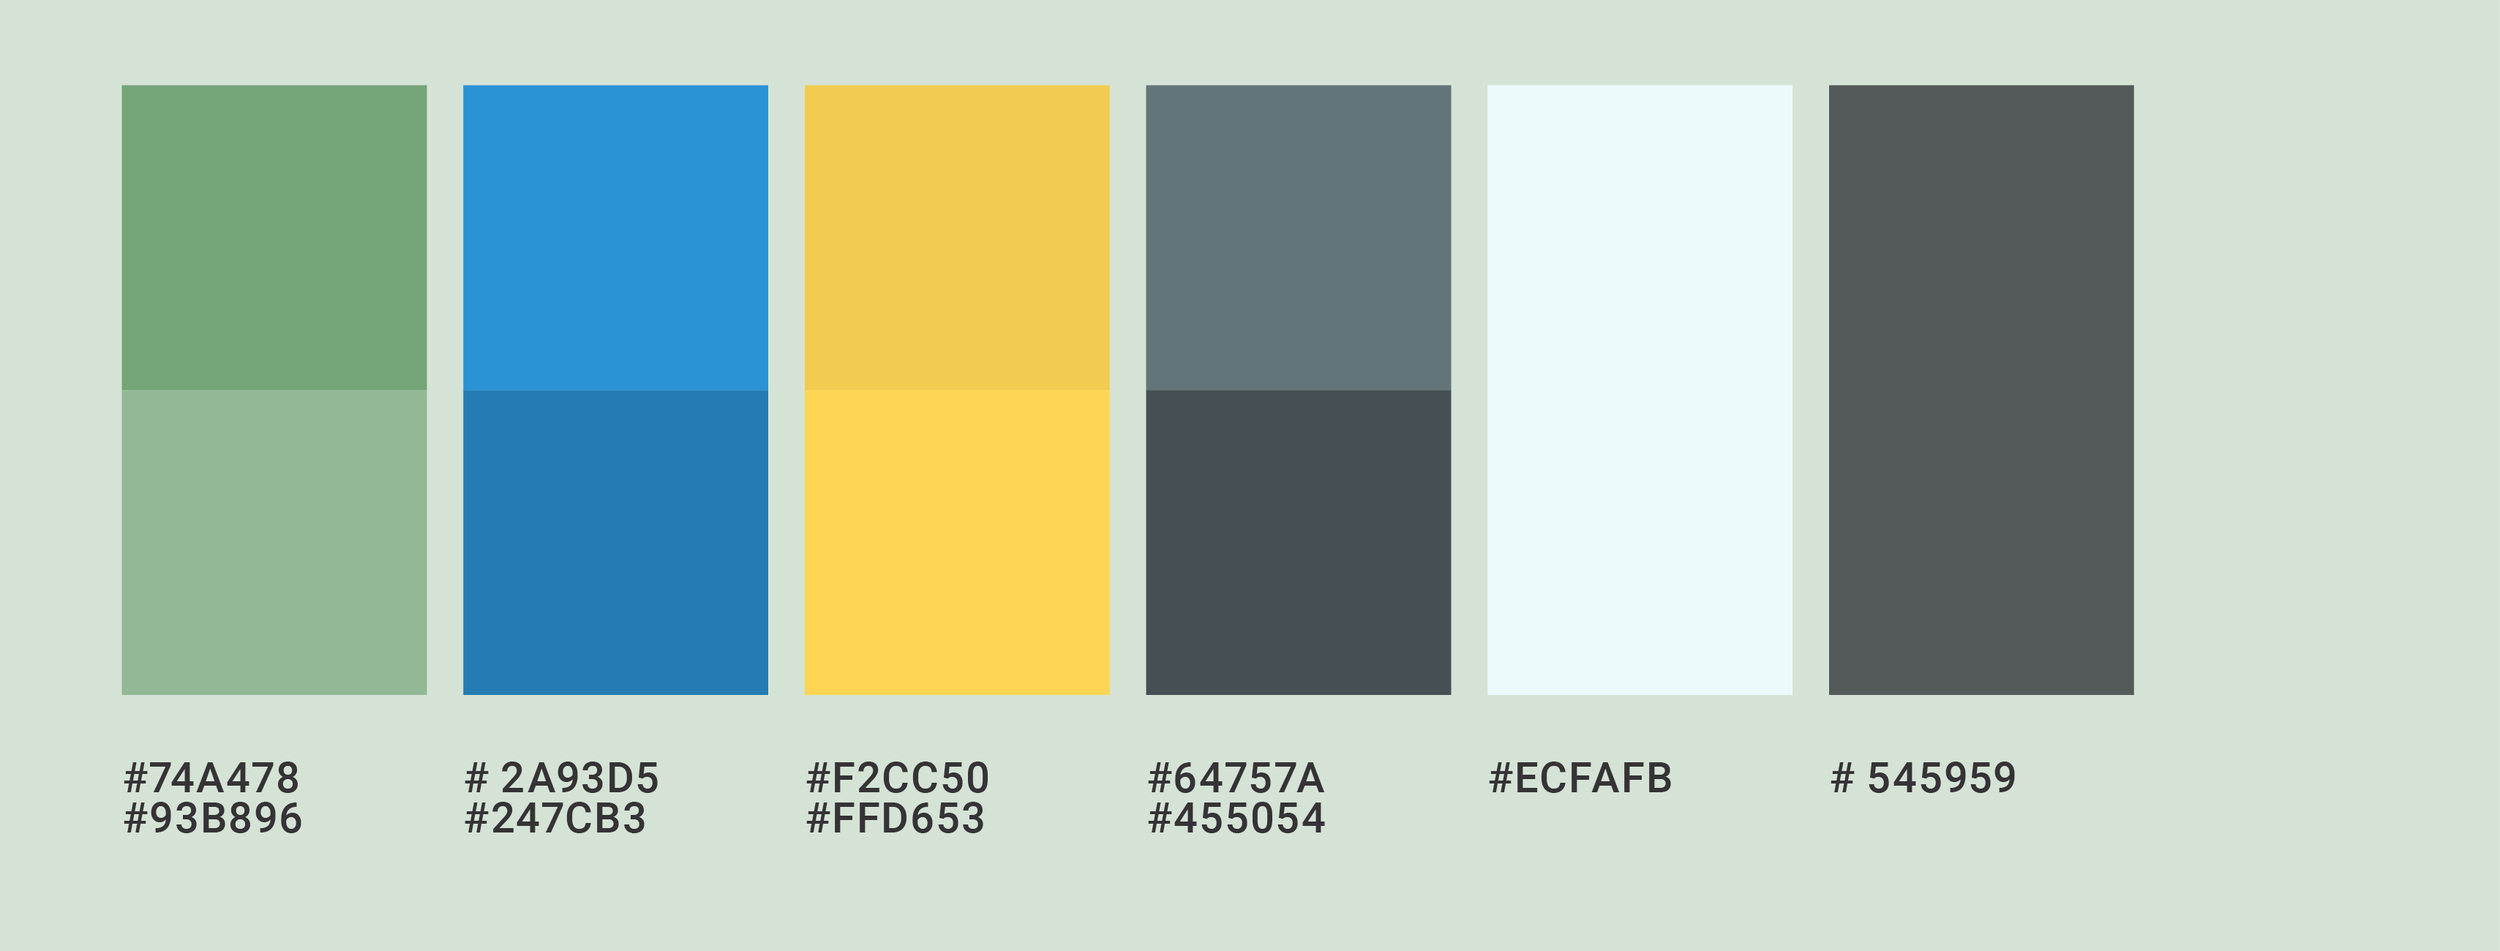 A color palette to foster calm while also having a little energy to reflect the joy within, the silver linings that are at the edge of fear and struggle. These colors are starter and base colors to help maintain a consistent look though you can add colors that compliment or contrast as desired.